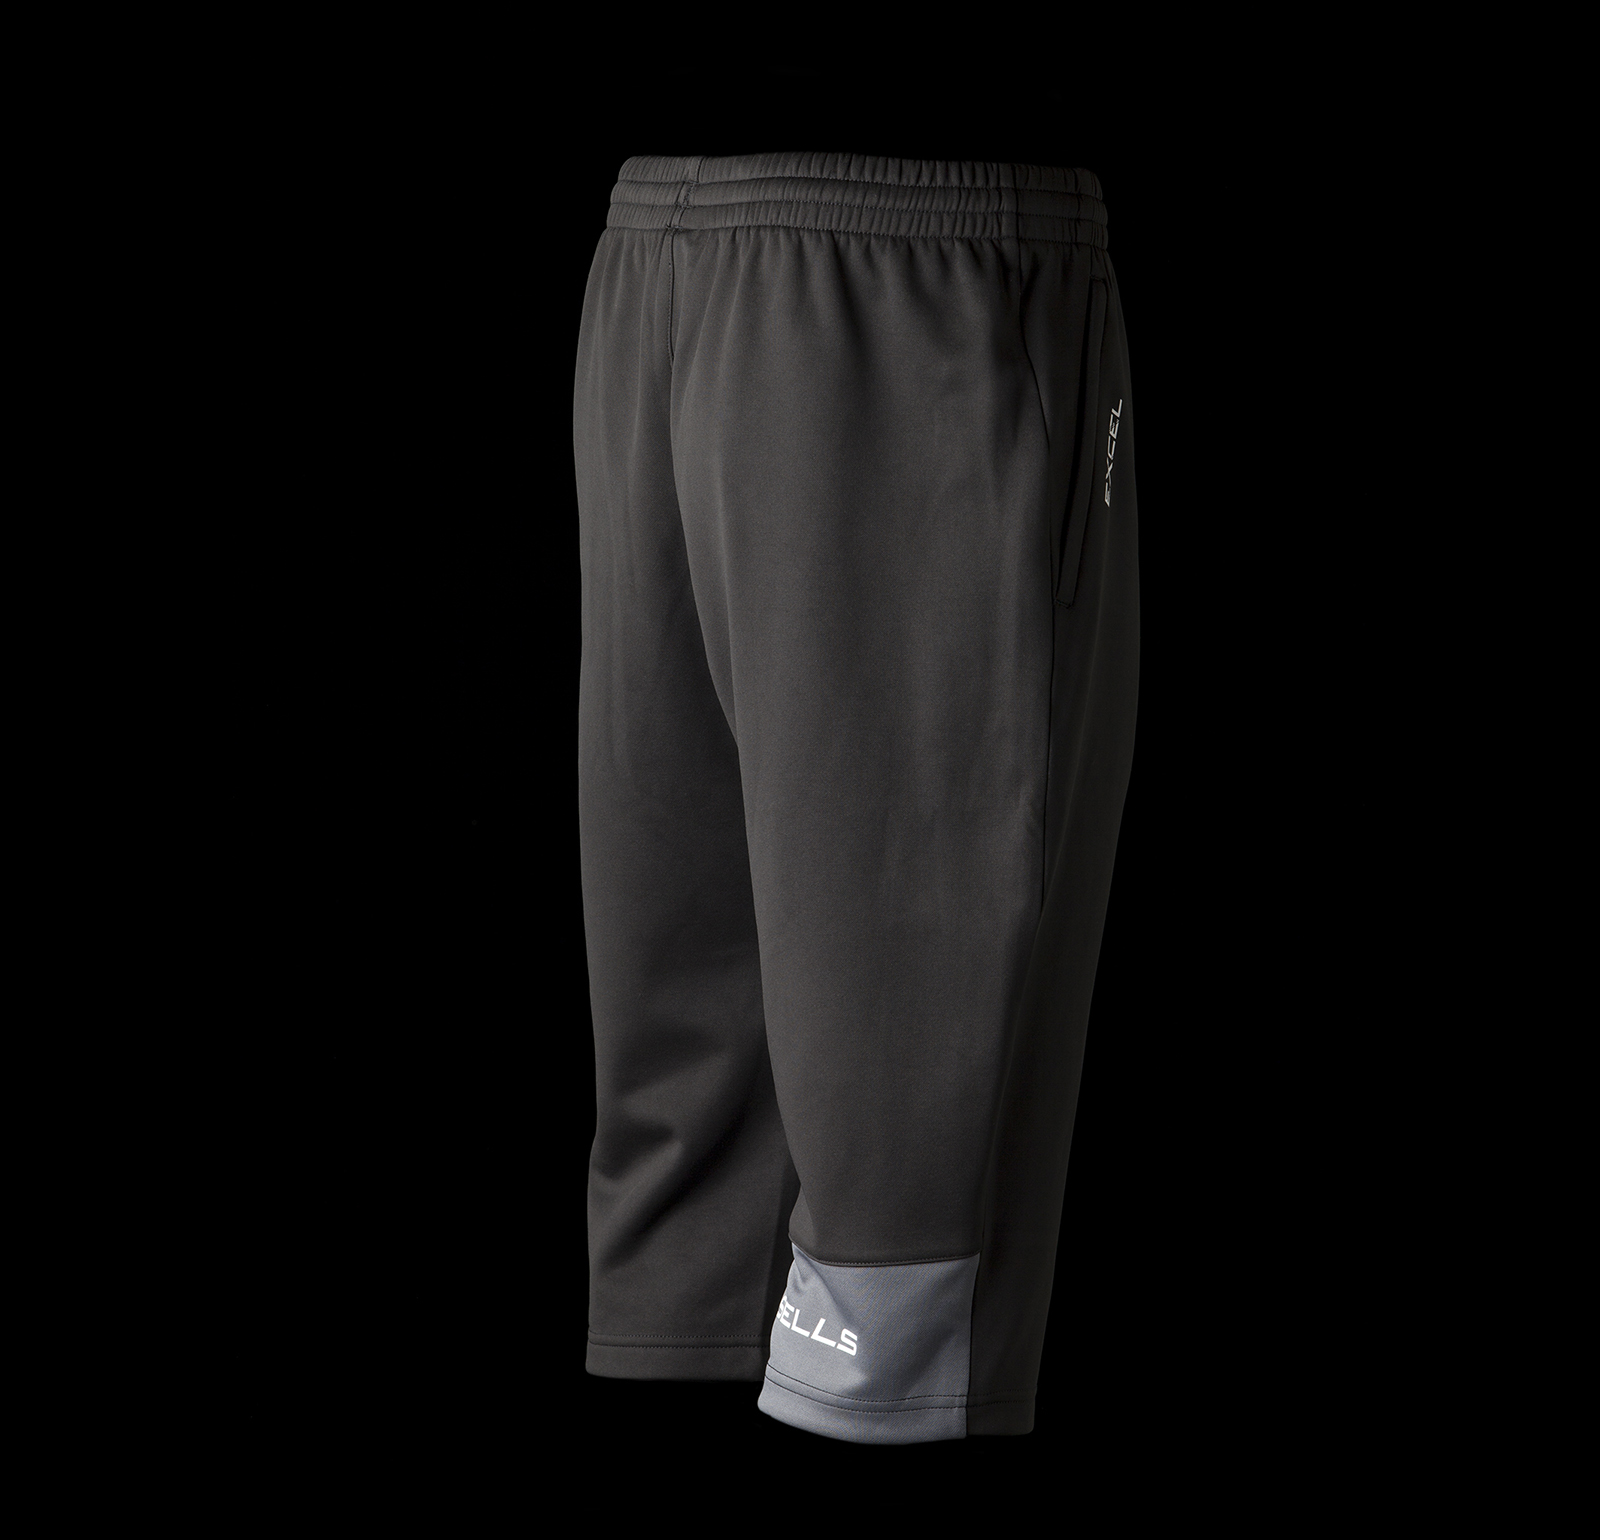 excel-3-4-pant-promo-49